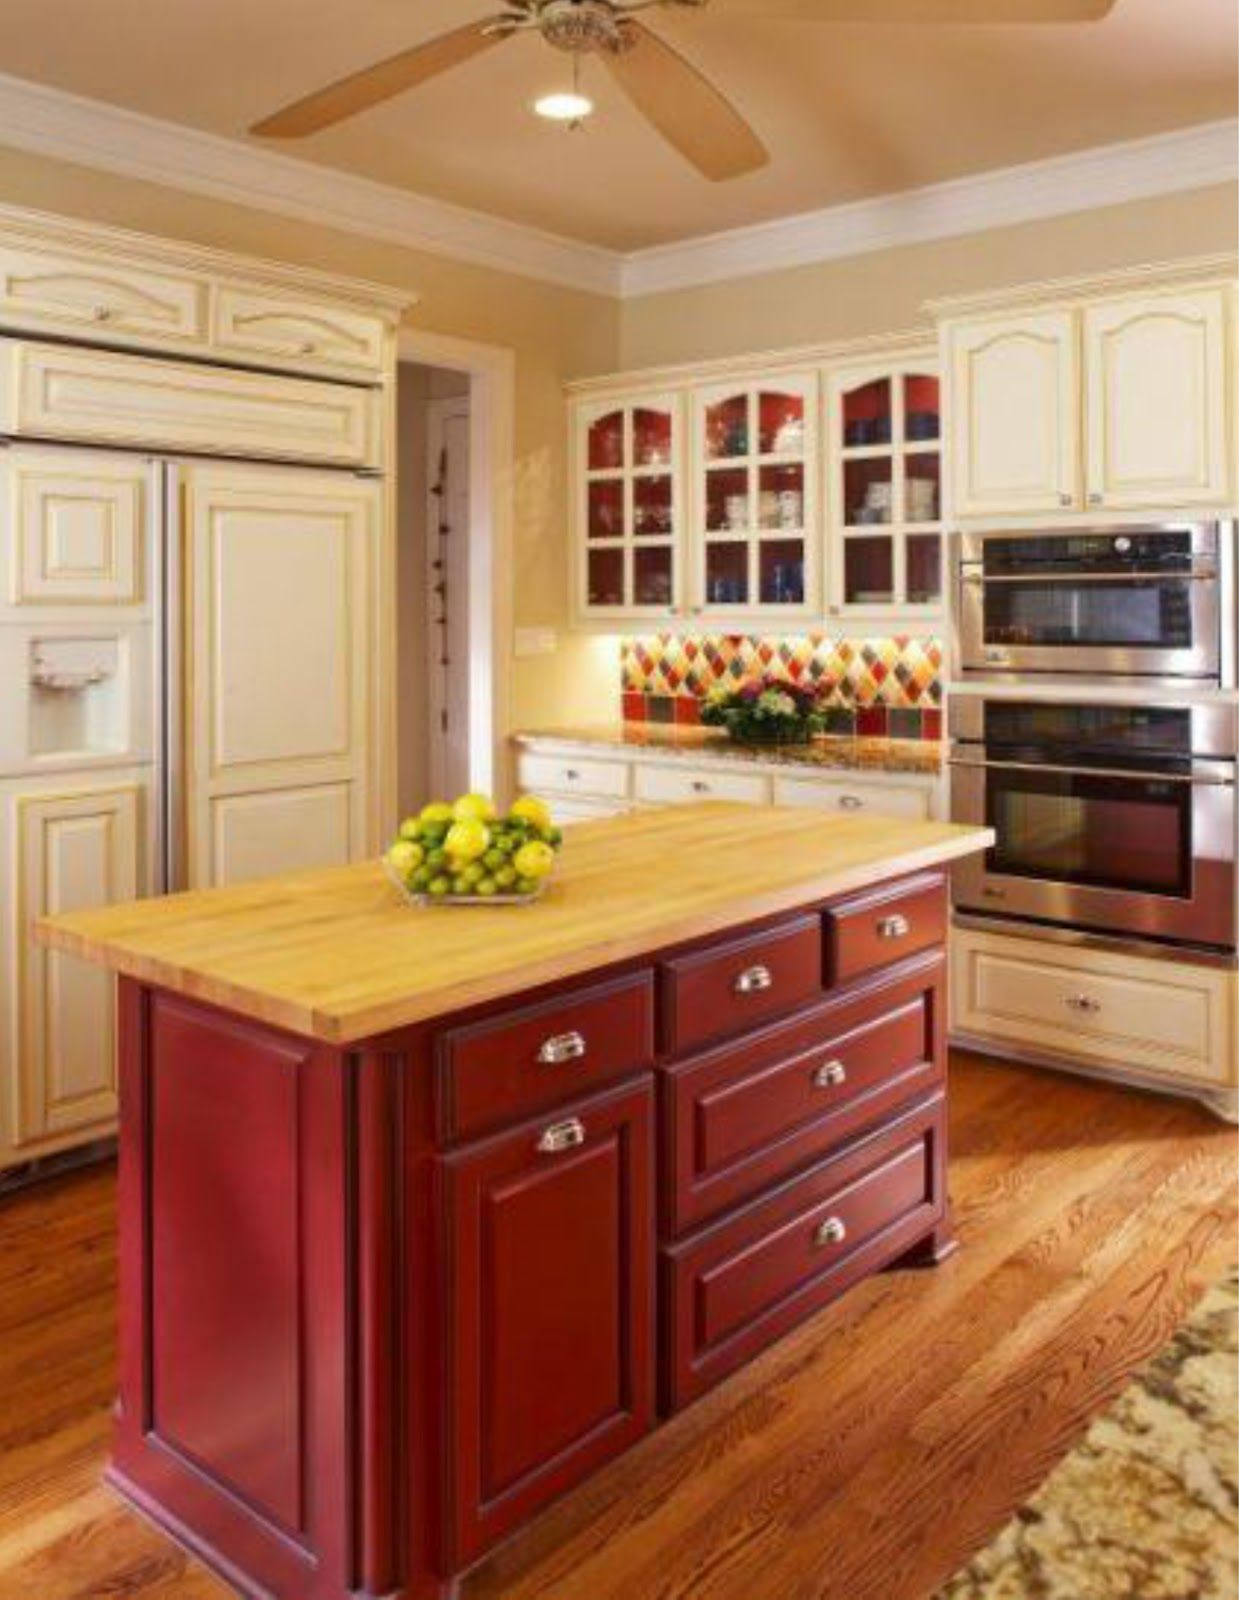 Two Tone Kitchen Island Victorian Cabinets 39 Ideas That Really Cool Islands Different Color Than Simplifying Remodeling Cabinet Finishes Double Style